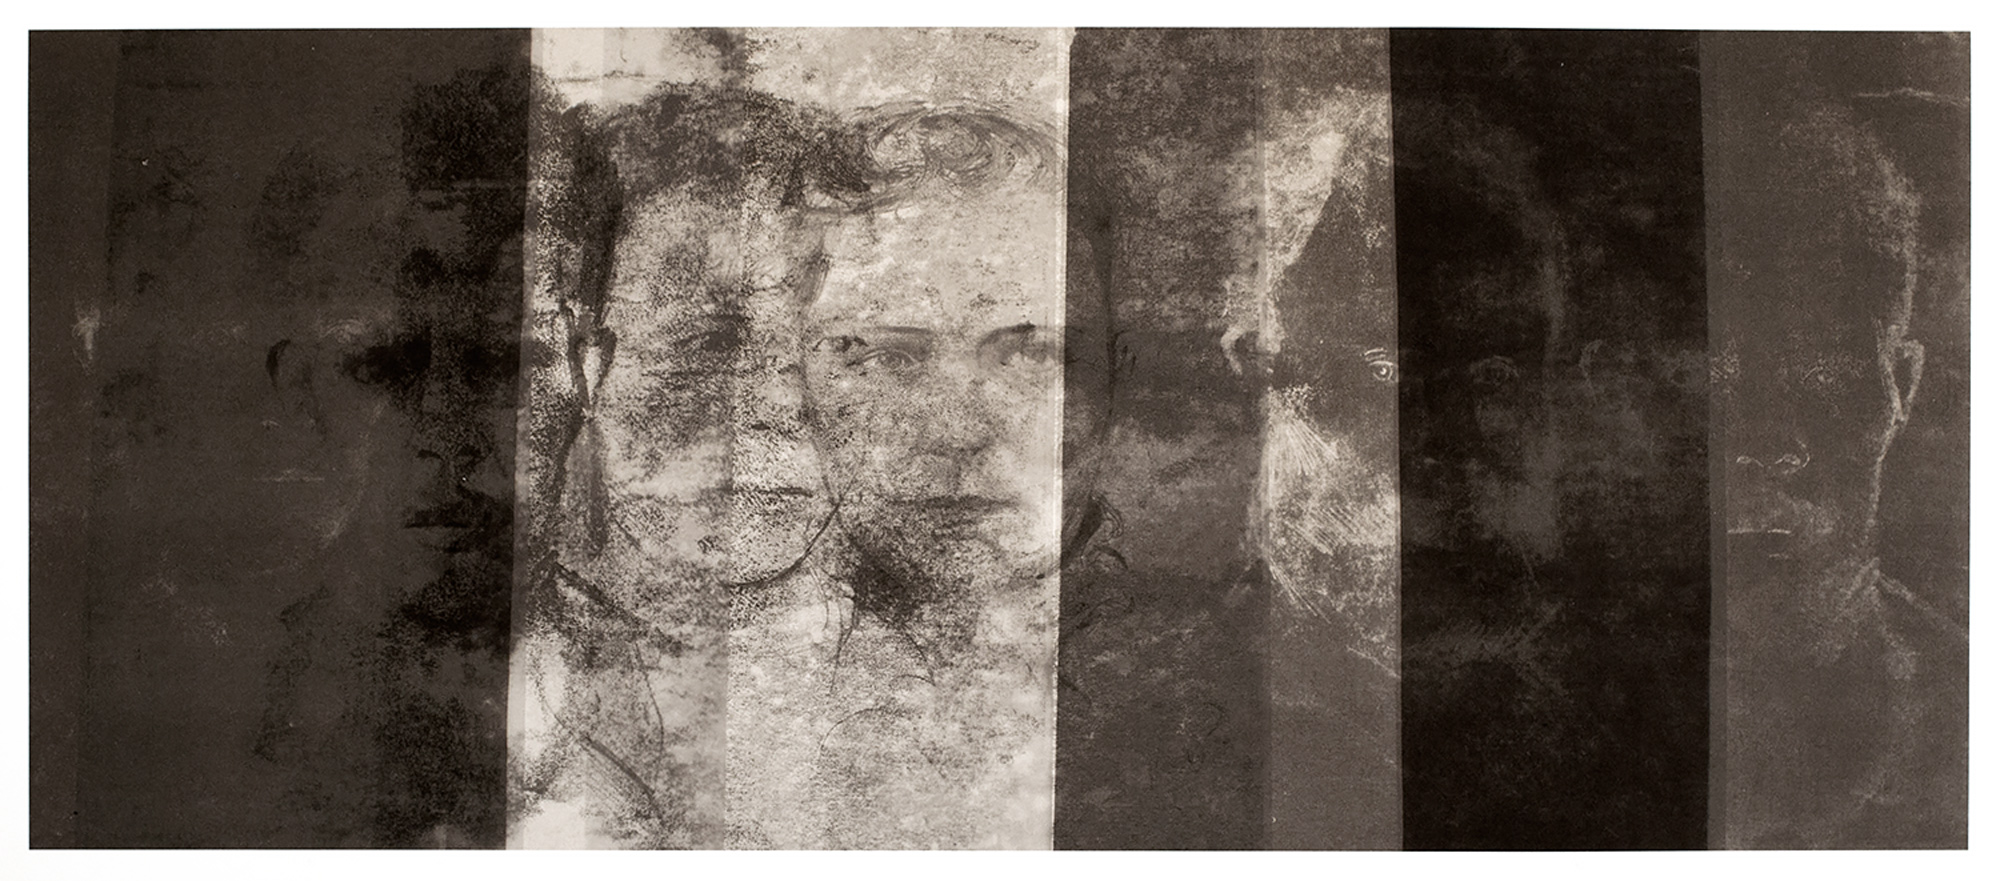 Prisoners of Darlinghurst Gaol, 2015, monoprint on rag paper, 42 x 76 cm